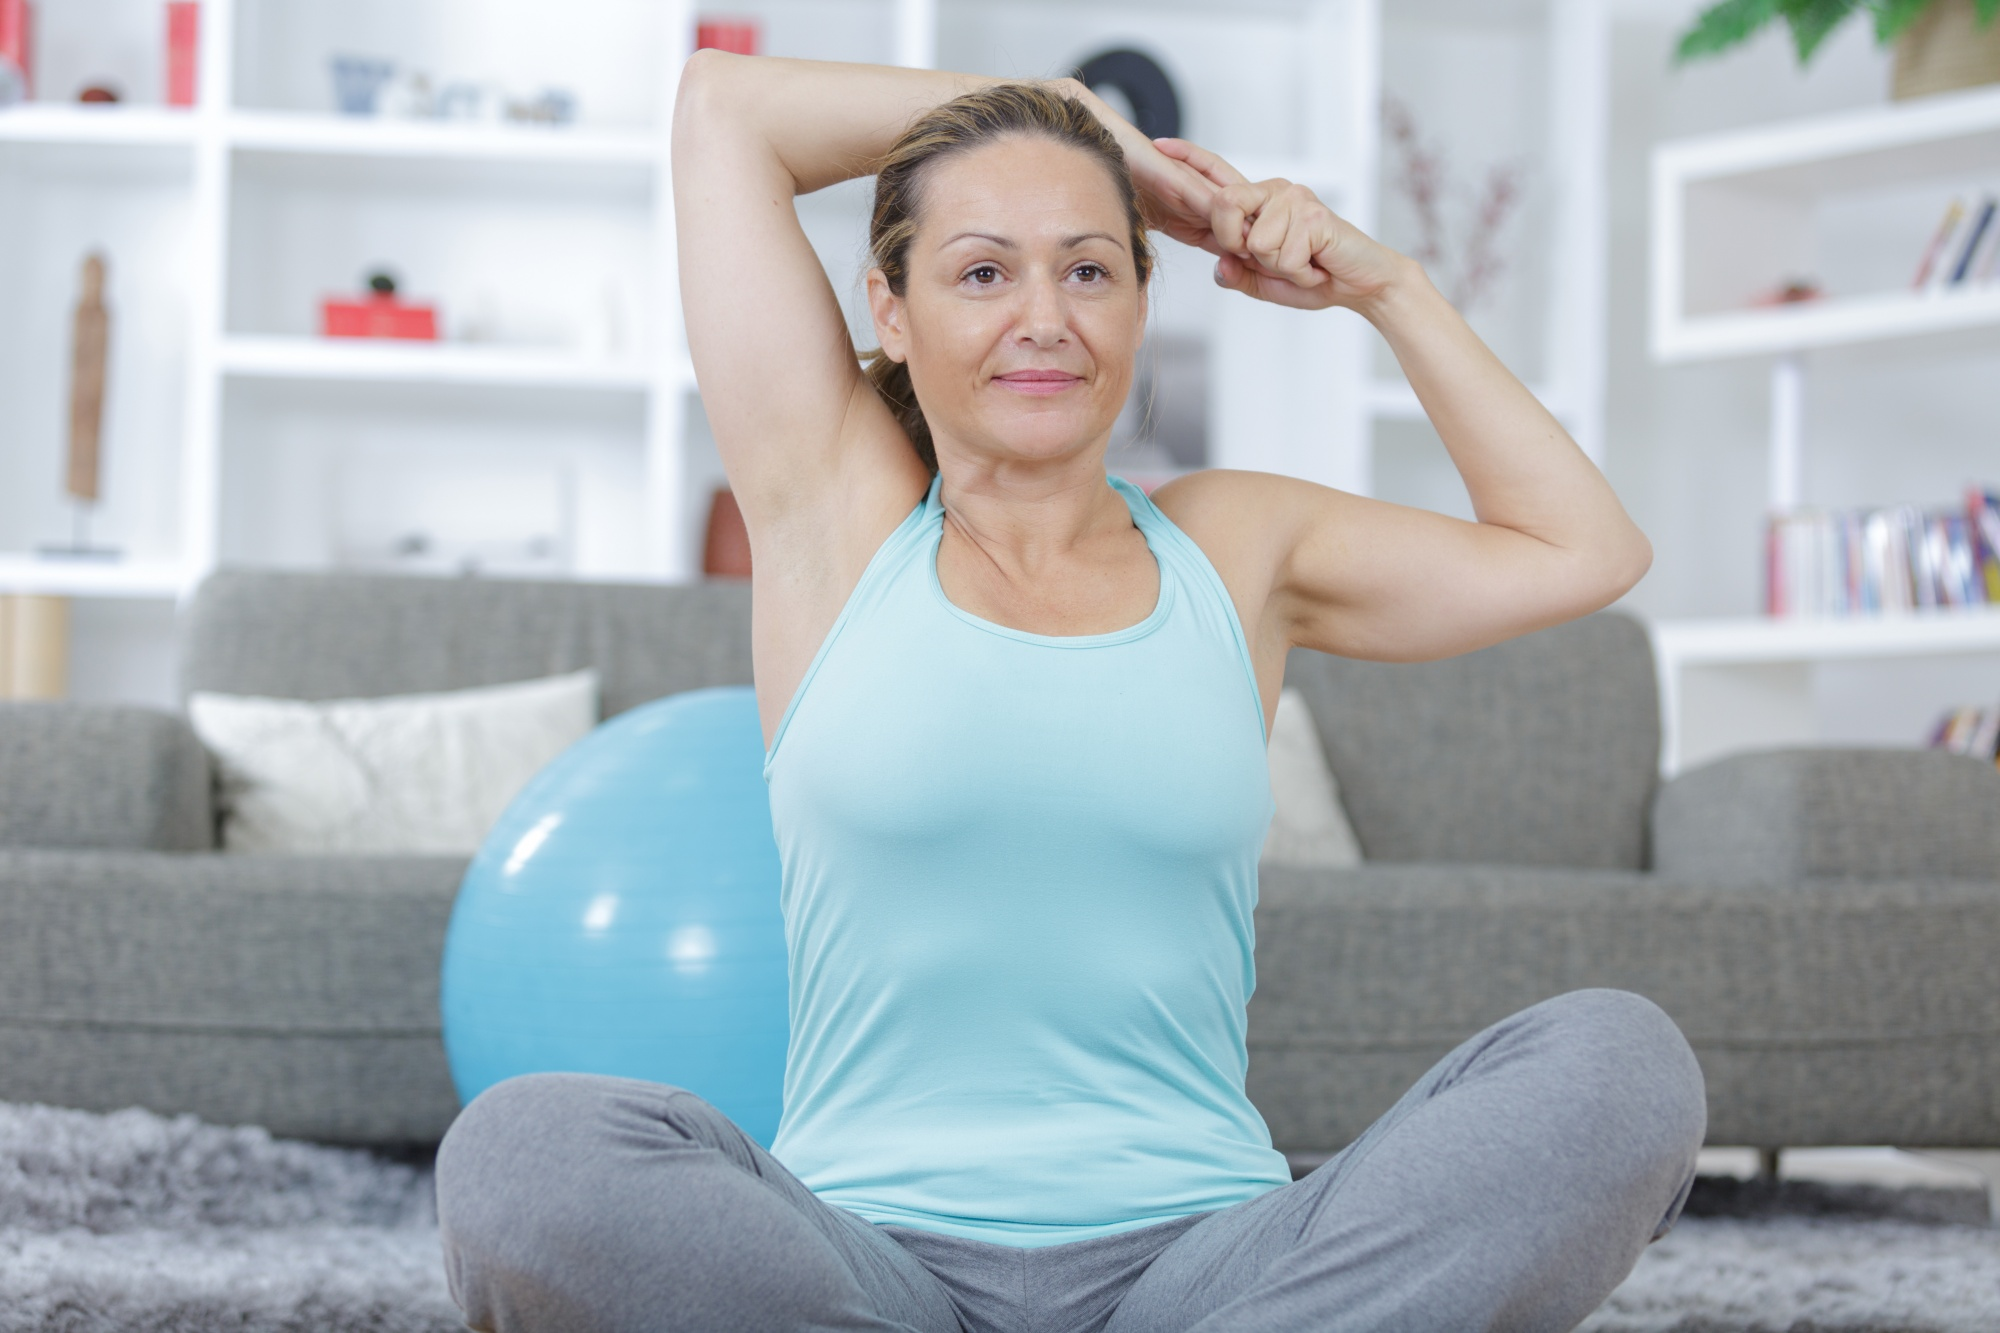 Middle-aged woman in blue tank stretching in her living room, workouts to get your booty swimsuit ready